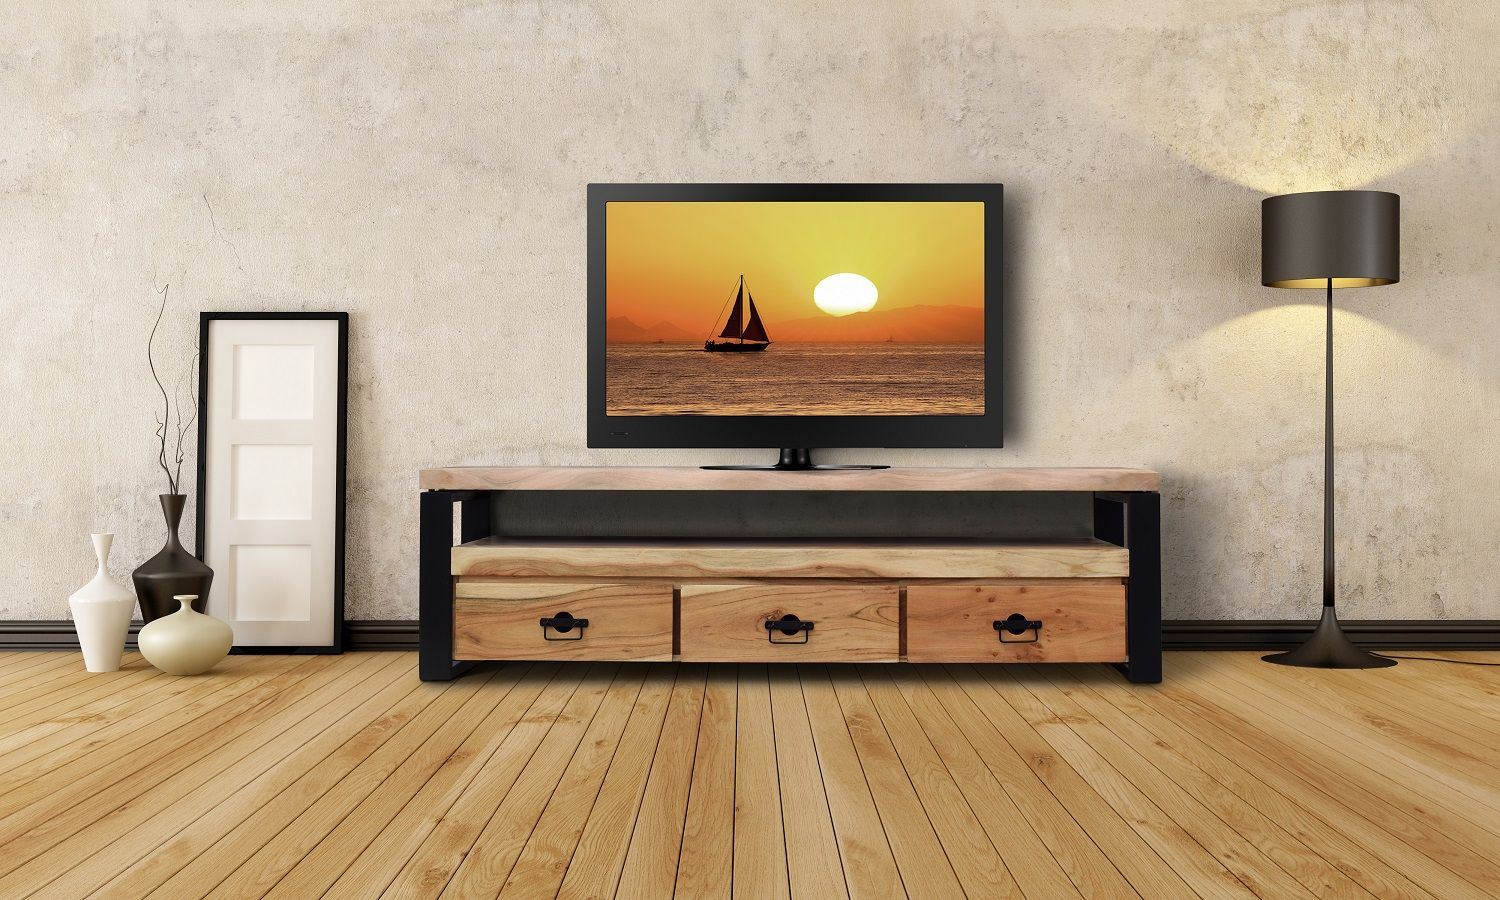 Planke Tv Bord - http://indieliving.dk/shop/zaydi-tv-bord-534p.html ...